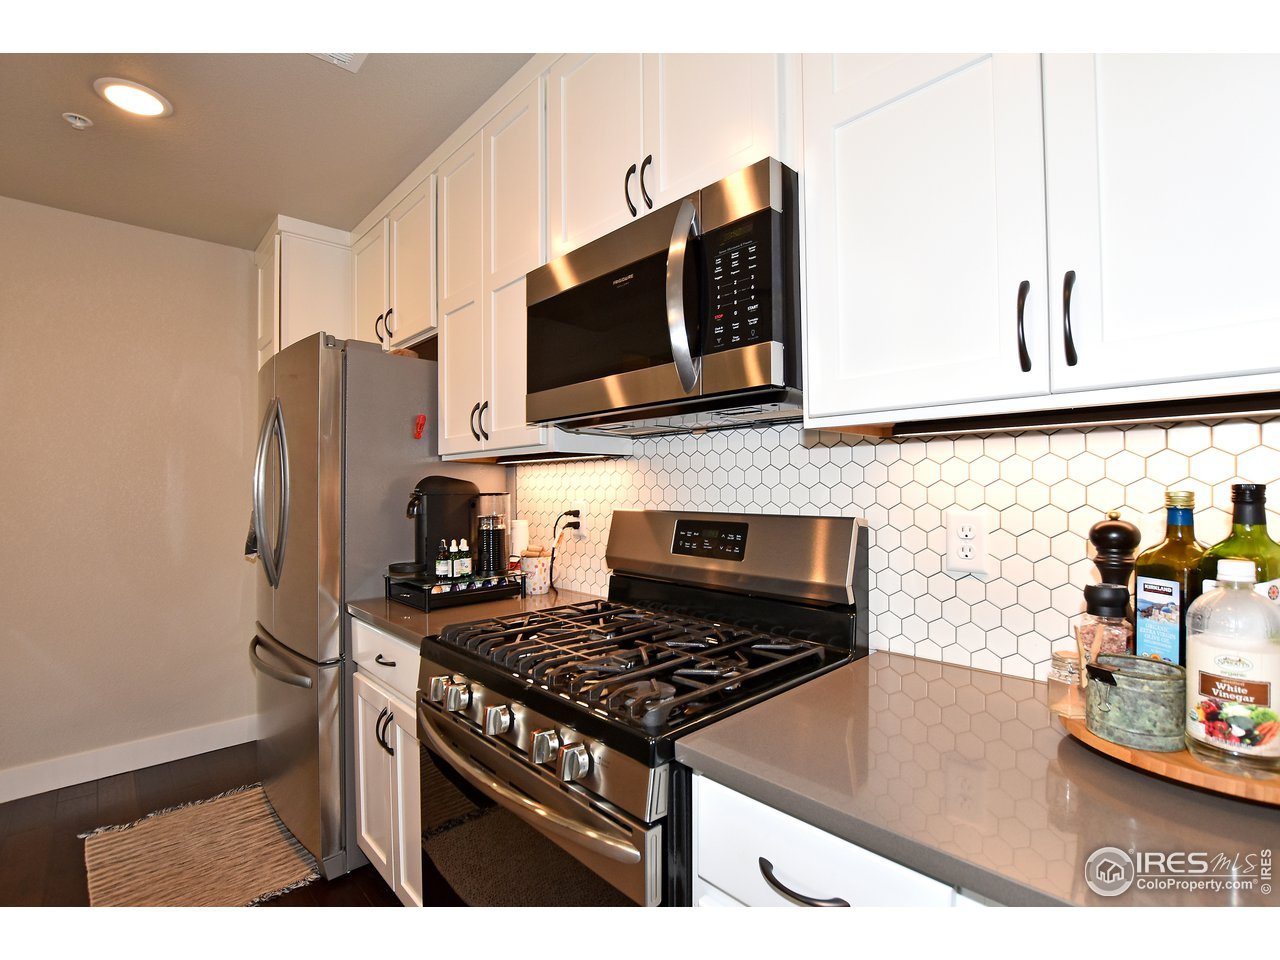 Chef's kitchen w/ an upgraded 5 burner gas range, french door refrigerator, and double pantries!